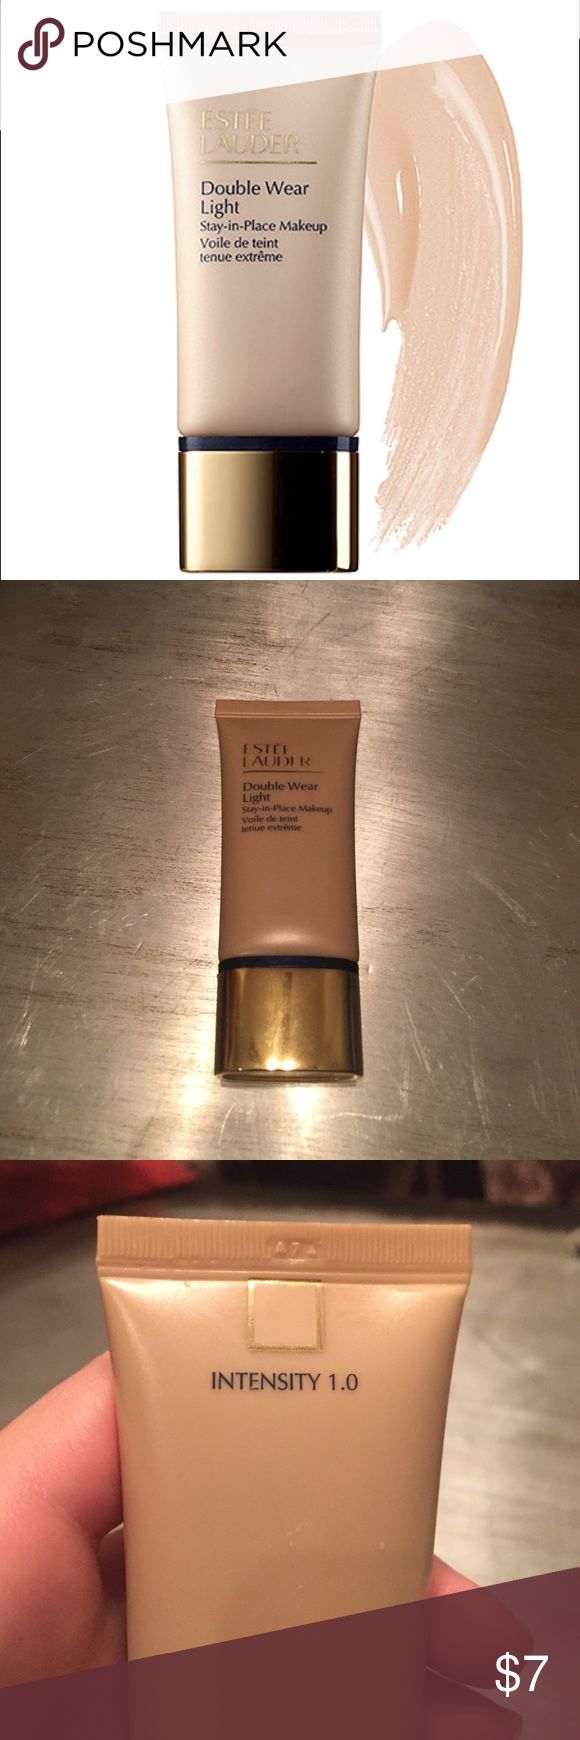 Estée Lauder Double Wear Light Foundation Beautiful foundation. Shade 1.0. There are at least 2-3 more full wears in this. Sanitary, just some residue in the cap shown in photo. Price reflects this and the amount. Great if you want to try before you buy the full size! Estee Lauder Makeup Foundation